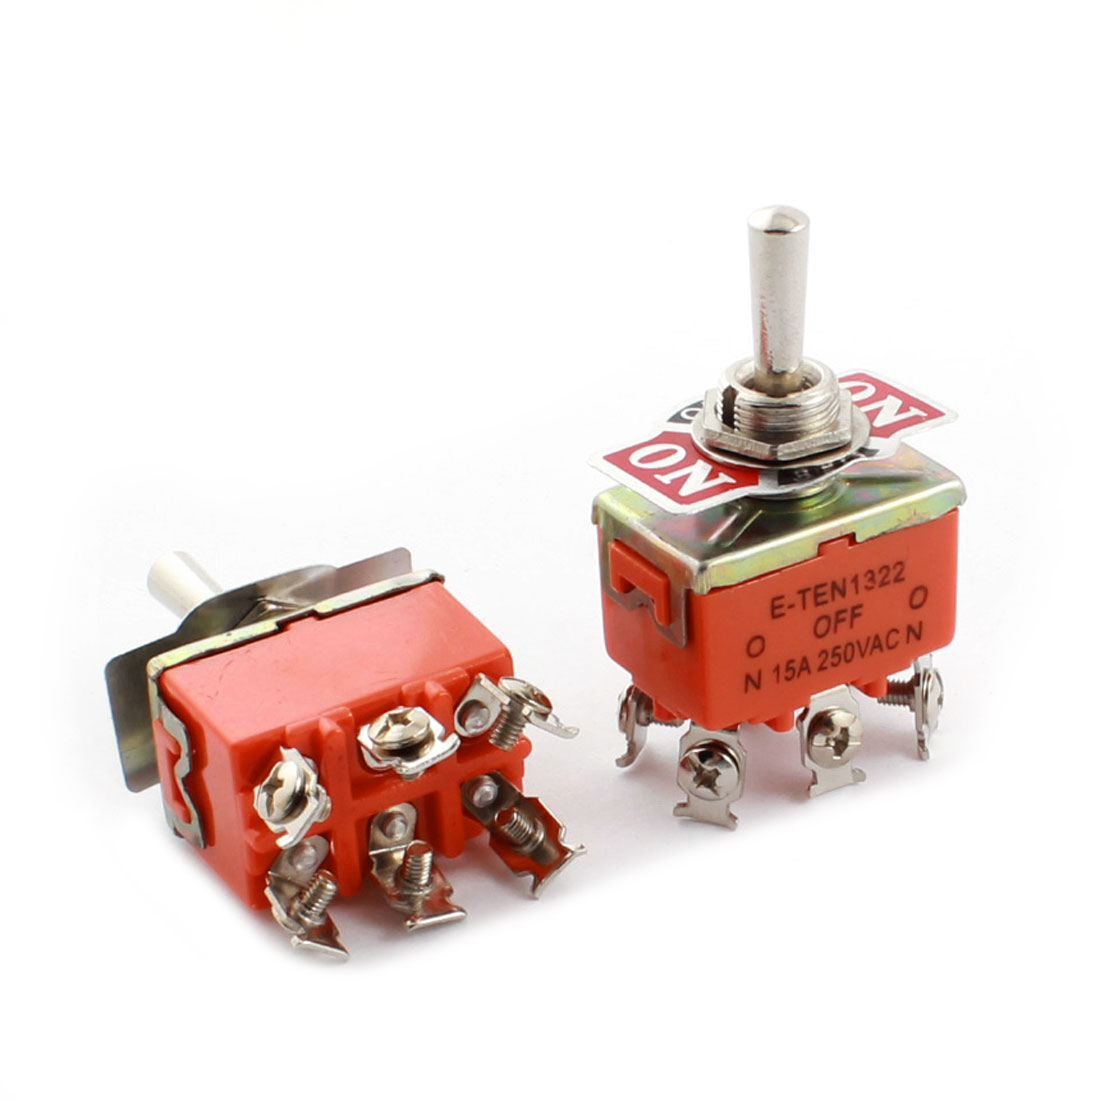 2PCS AC250V 15A ON-OFF-ON 6 Screw Terminals Three Position DPDT Locking Toggle Switch